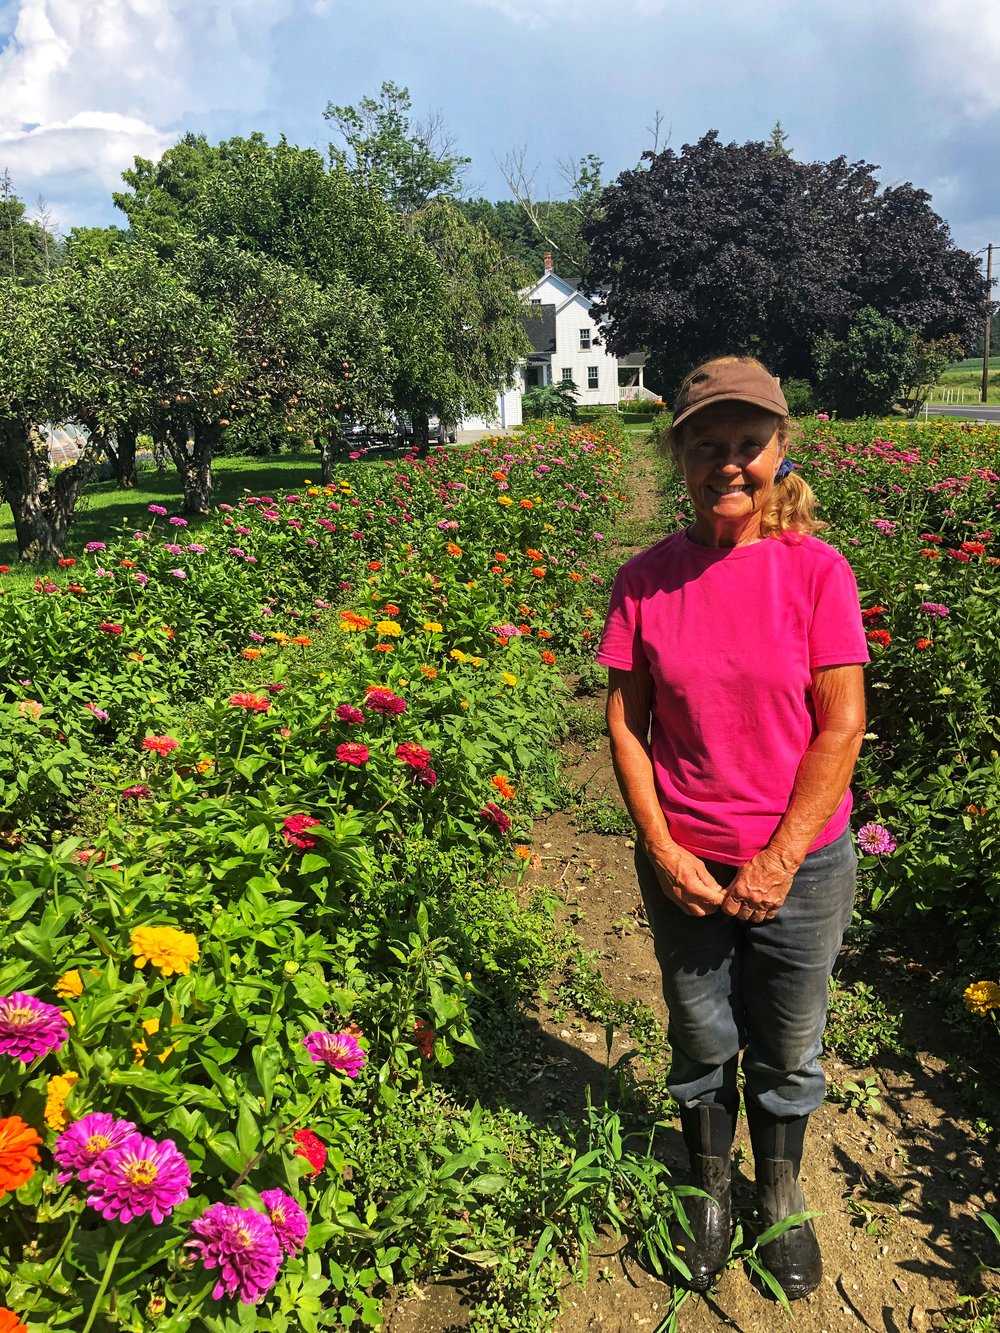 Susan Macone in her field of flowers.